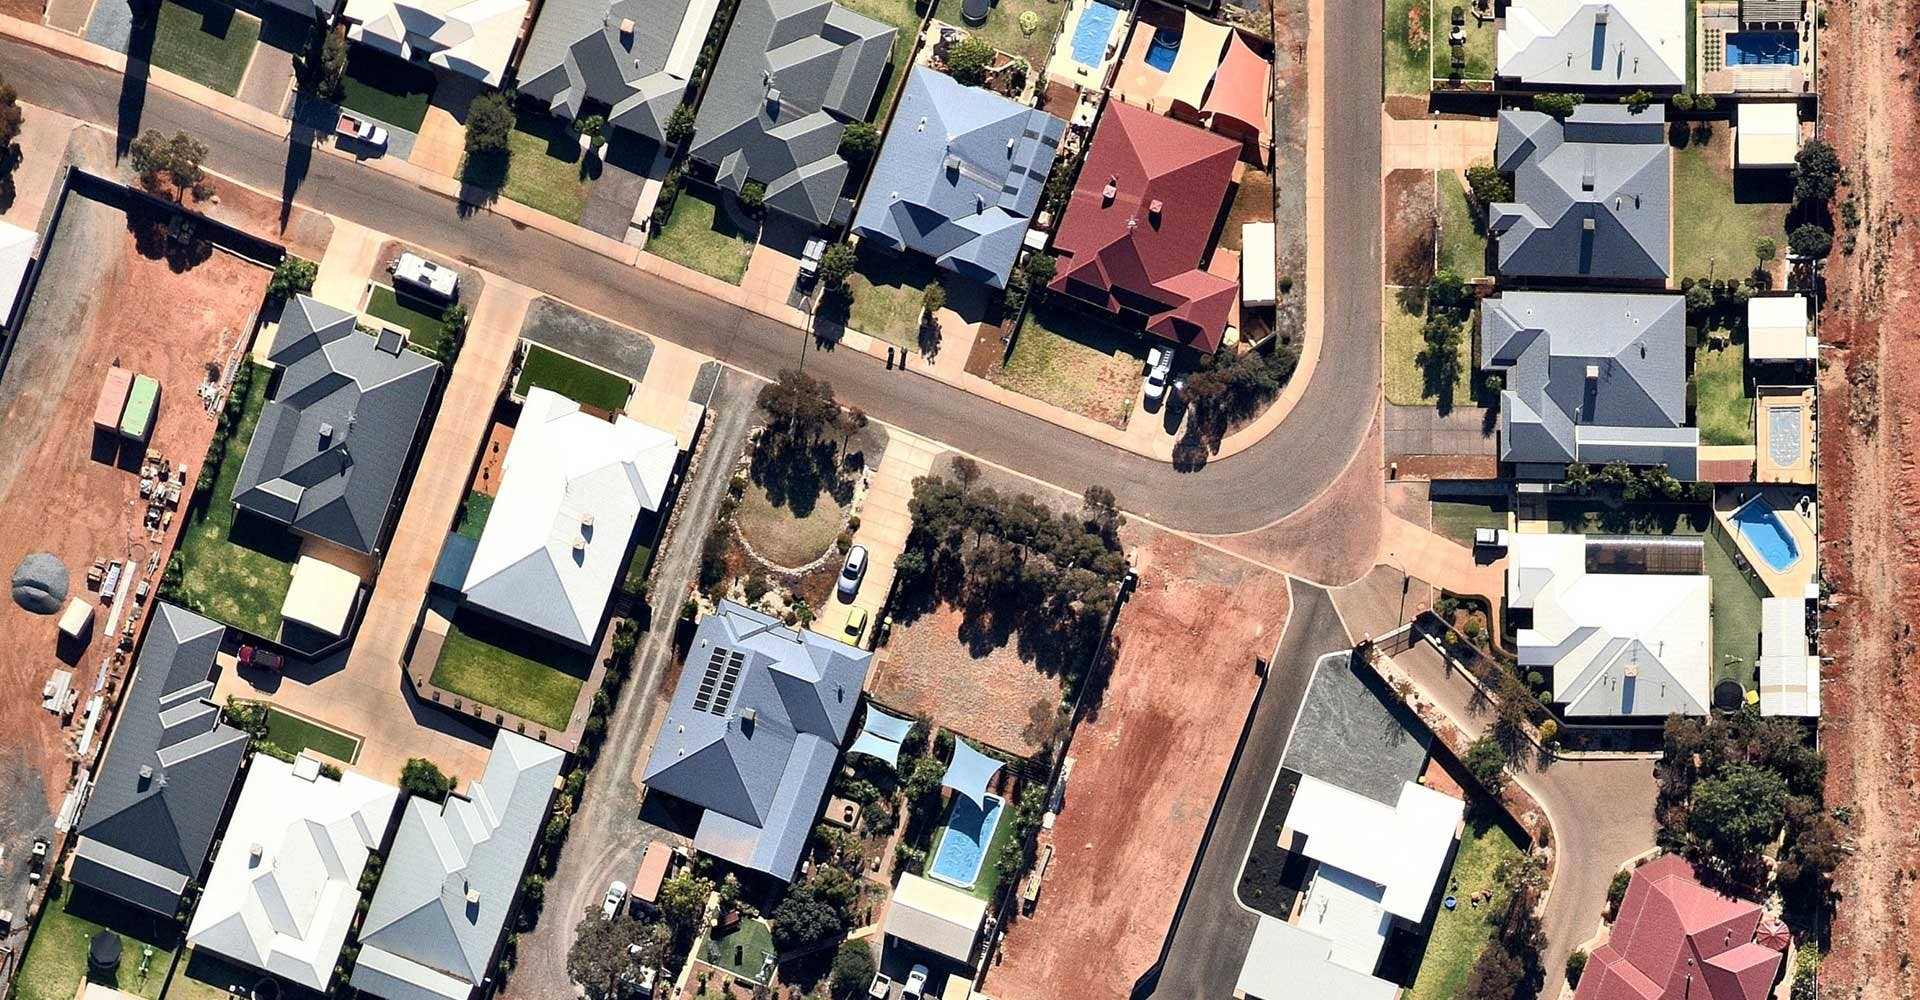 Industries aerial image of housing and construction in Broadwood, Western Australia